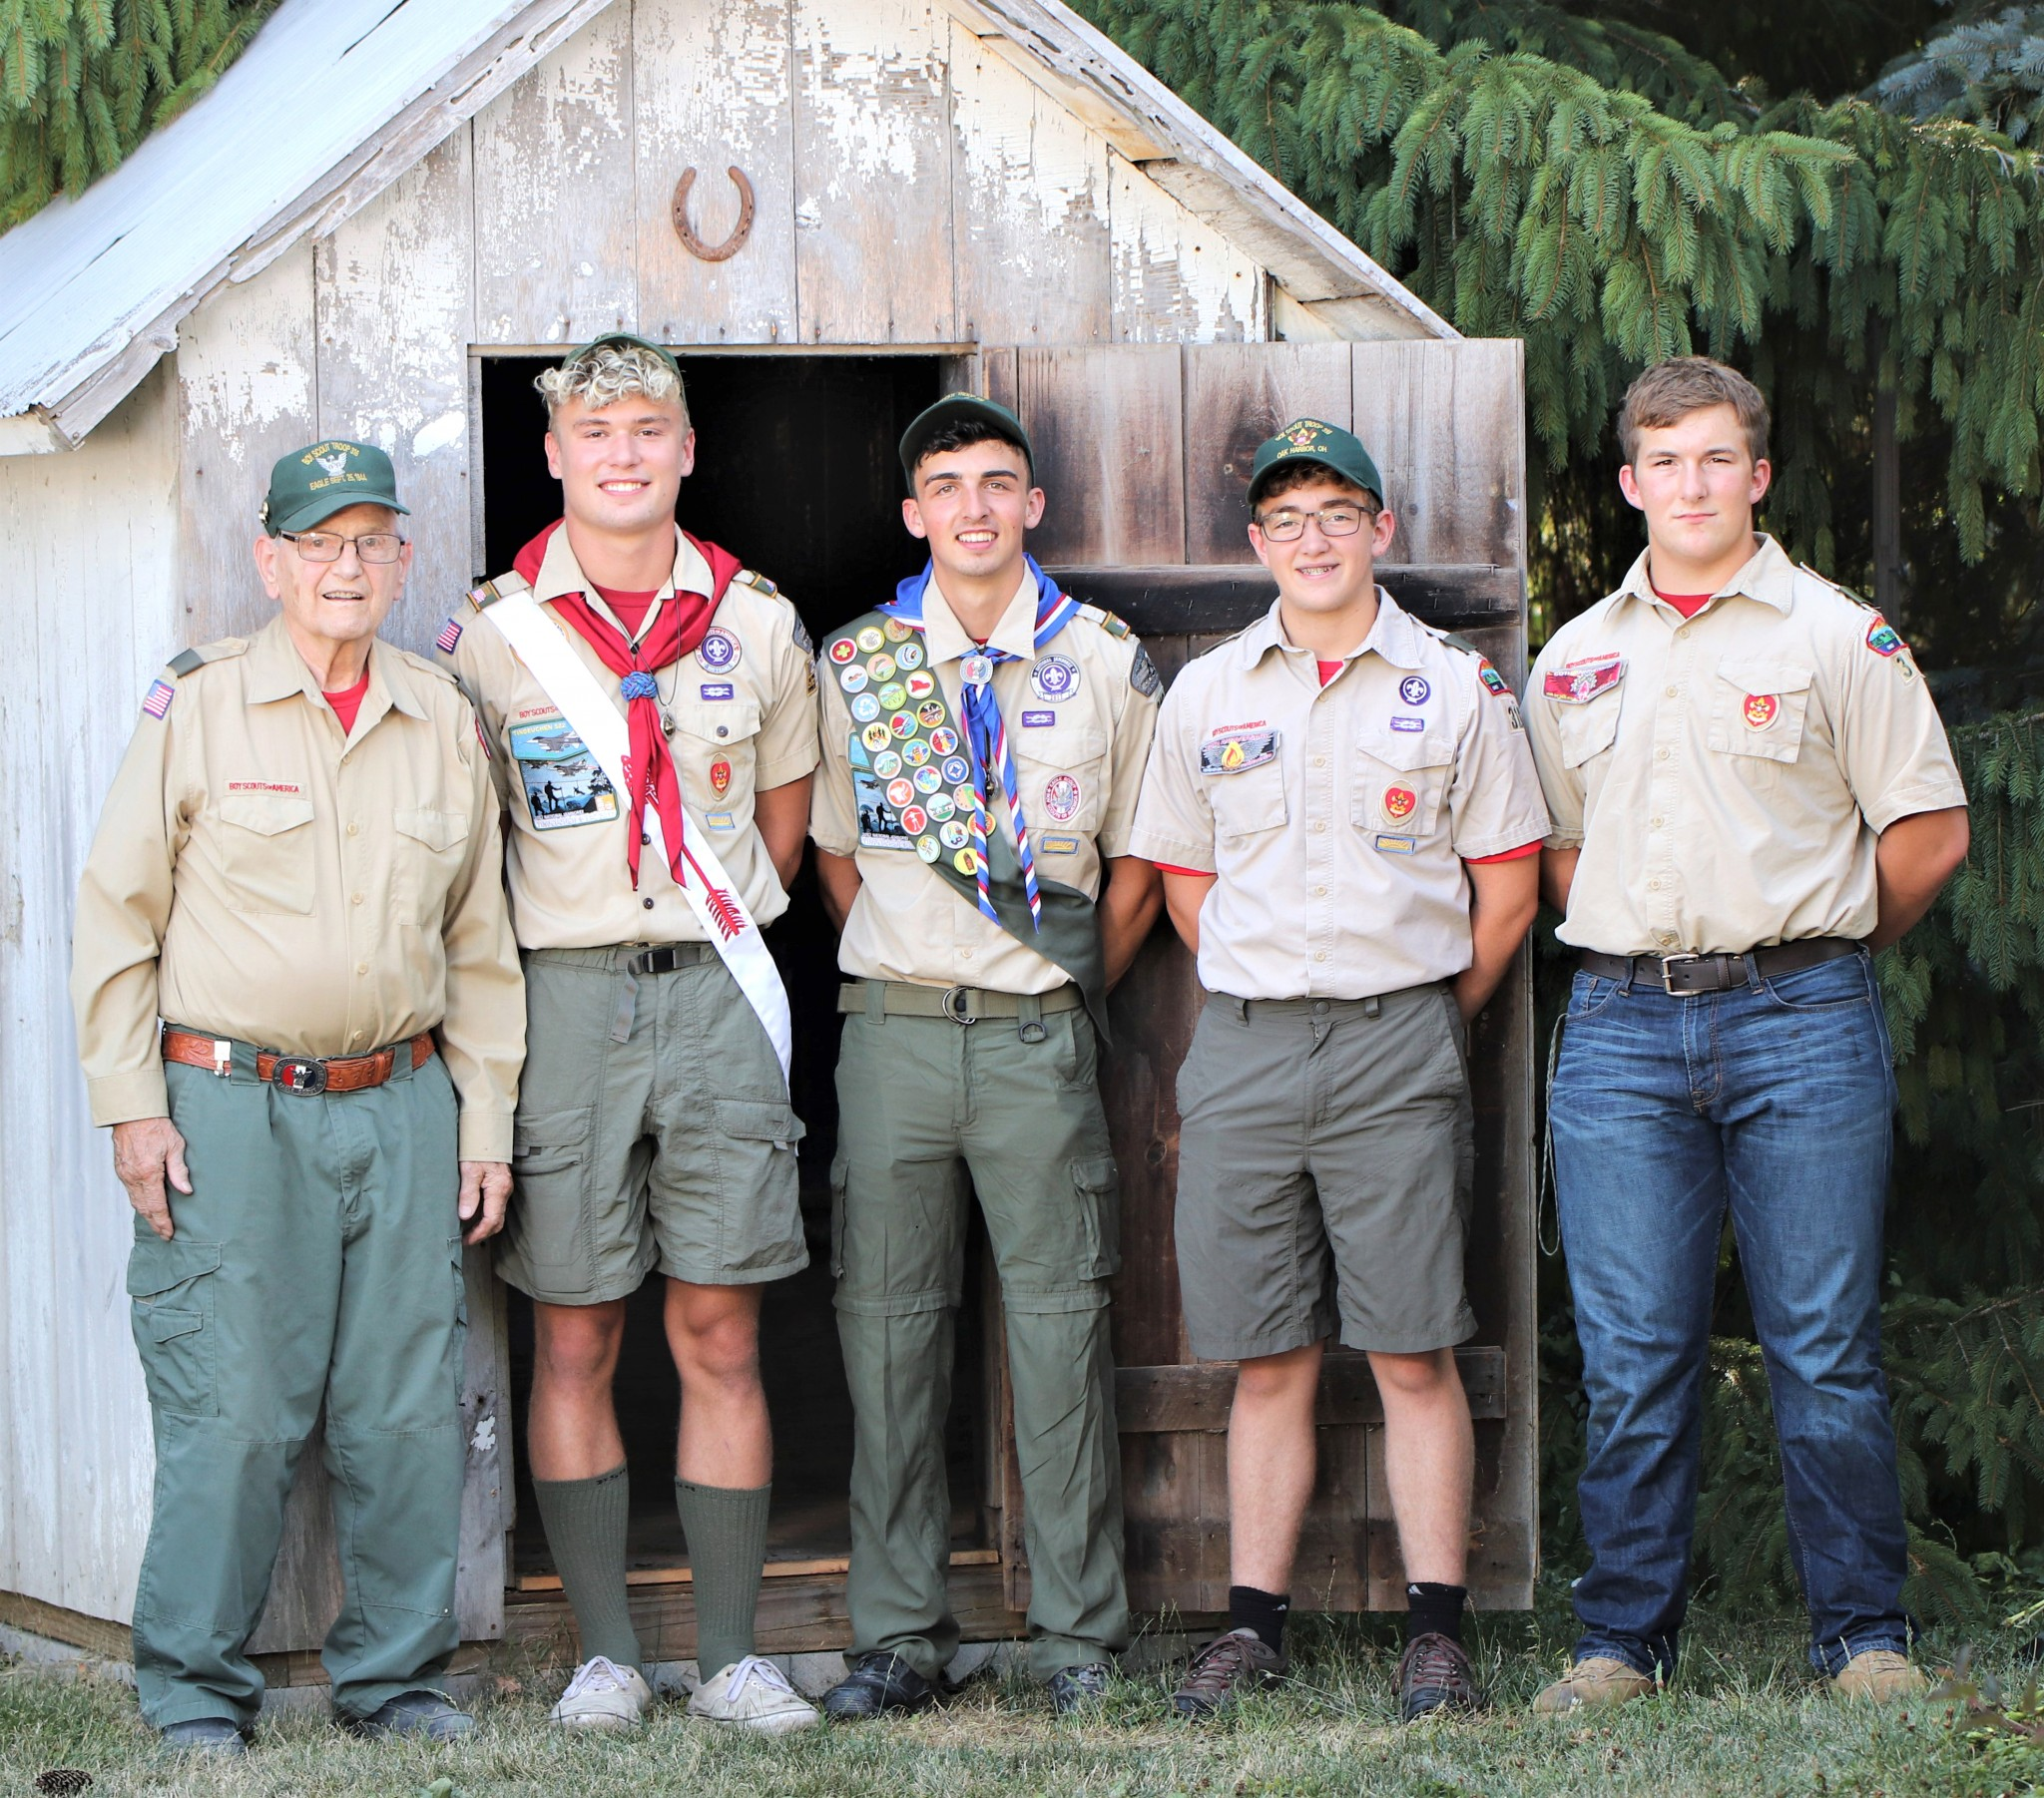 From left: Scoutmaster Roger Carpenter, Kobe Fletcher and fellow Scouts Cameron Crandall, Nathan Buderer, and Egan Bolander. (Submitted photo)